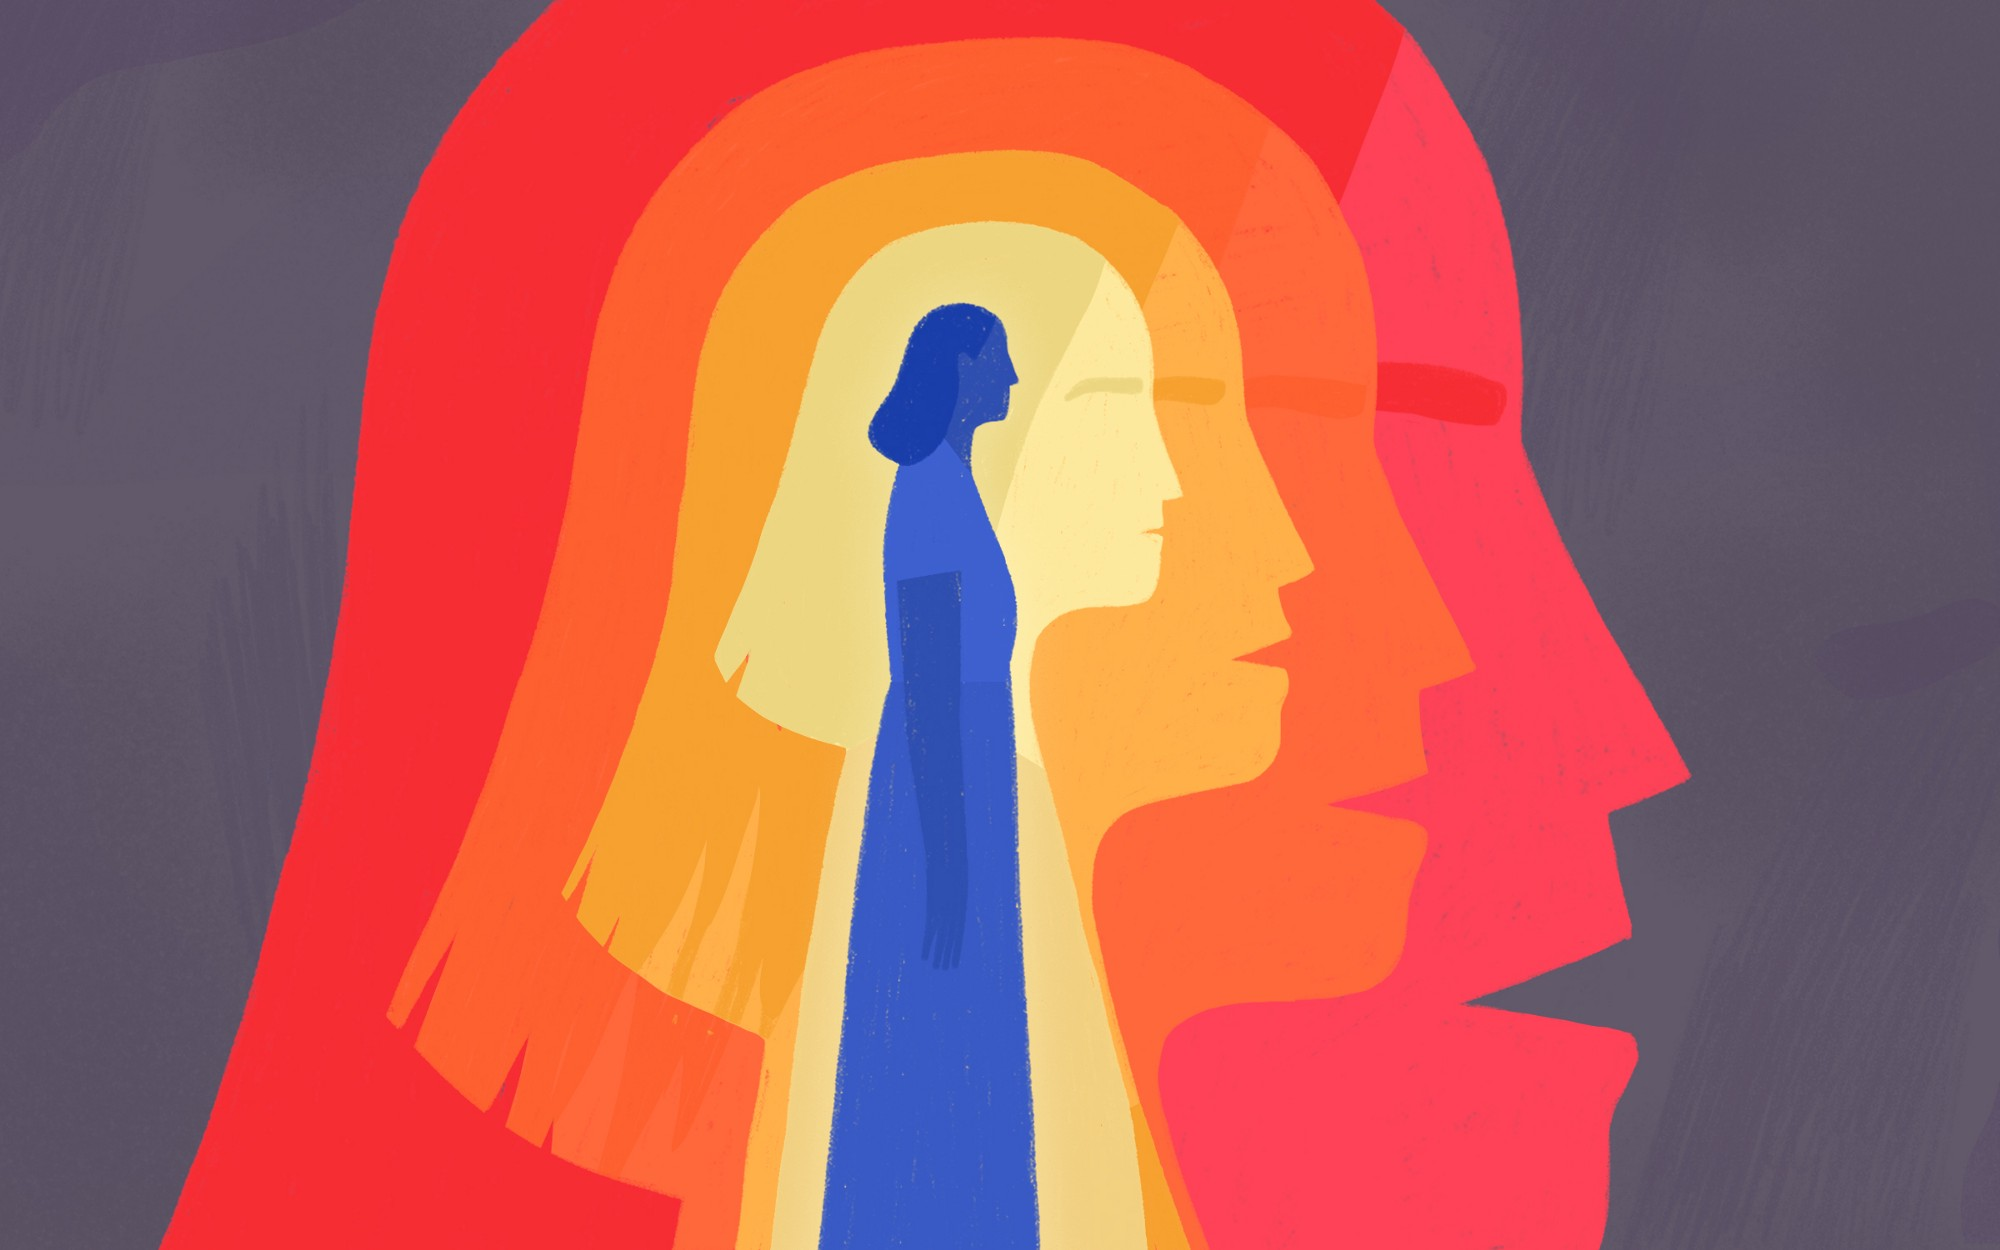 Illustration of a woman in the center, with concentric silhouettes of her around her.